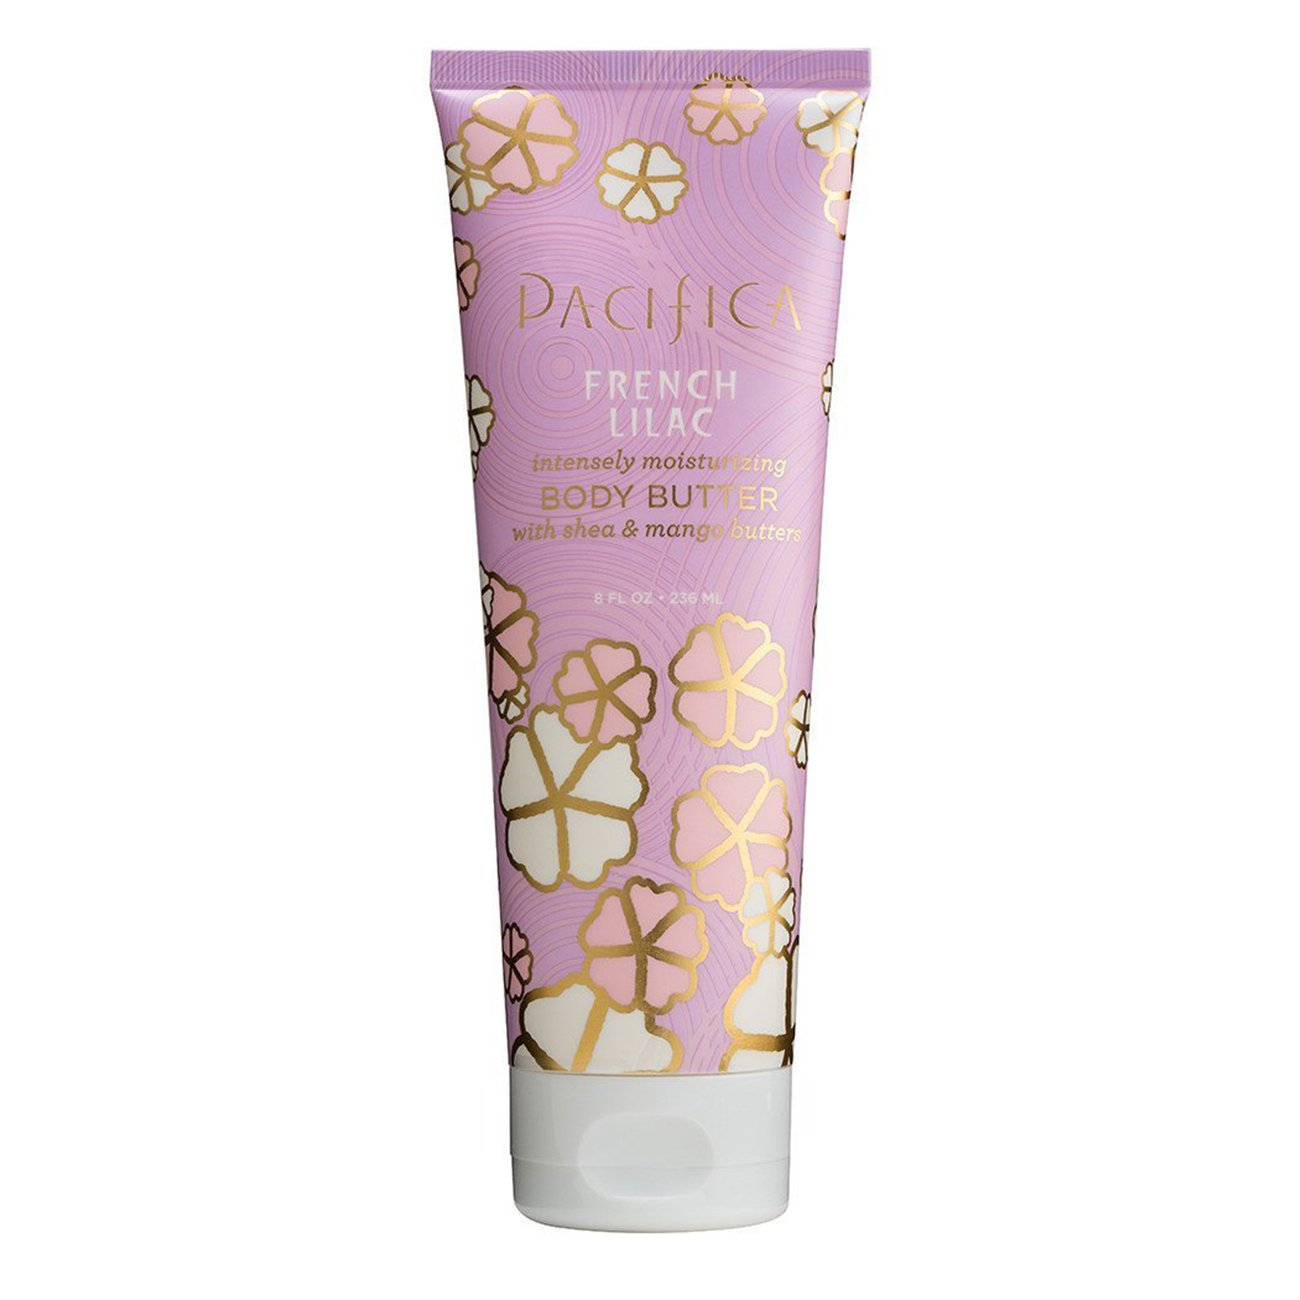 French Lilac Body Butter Tube